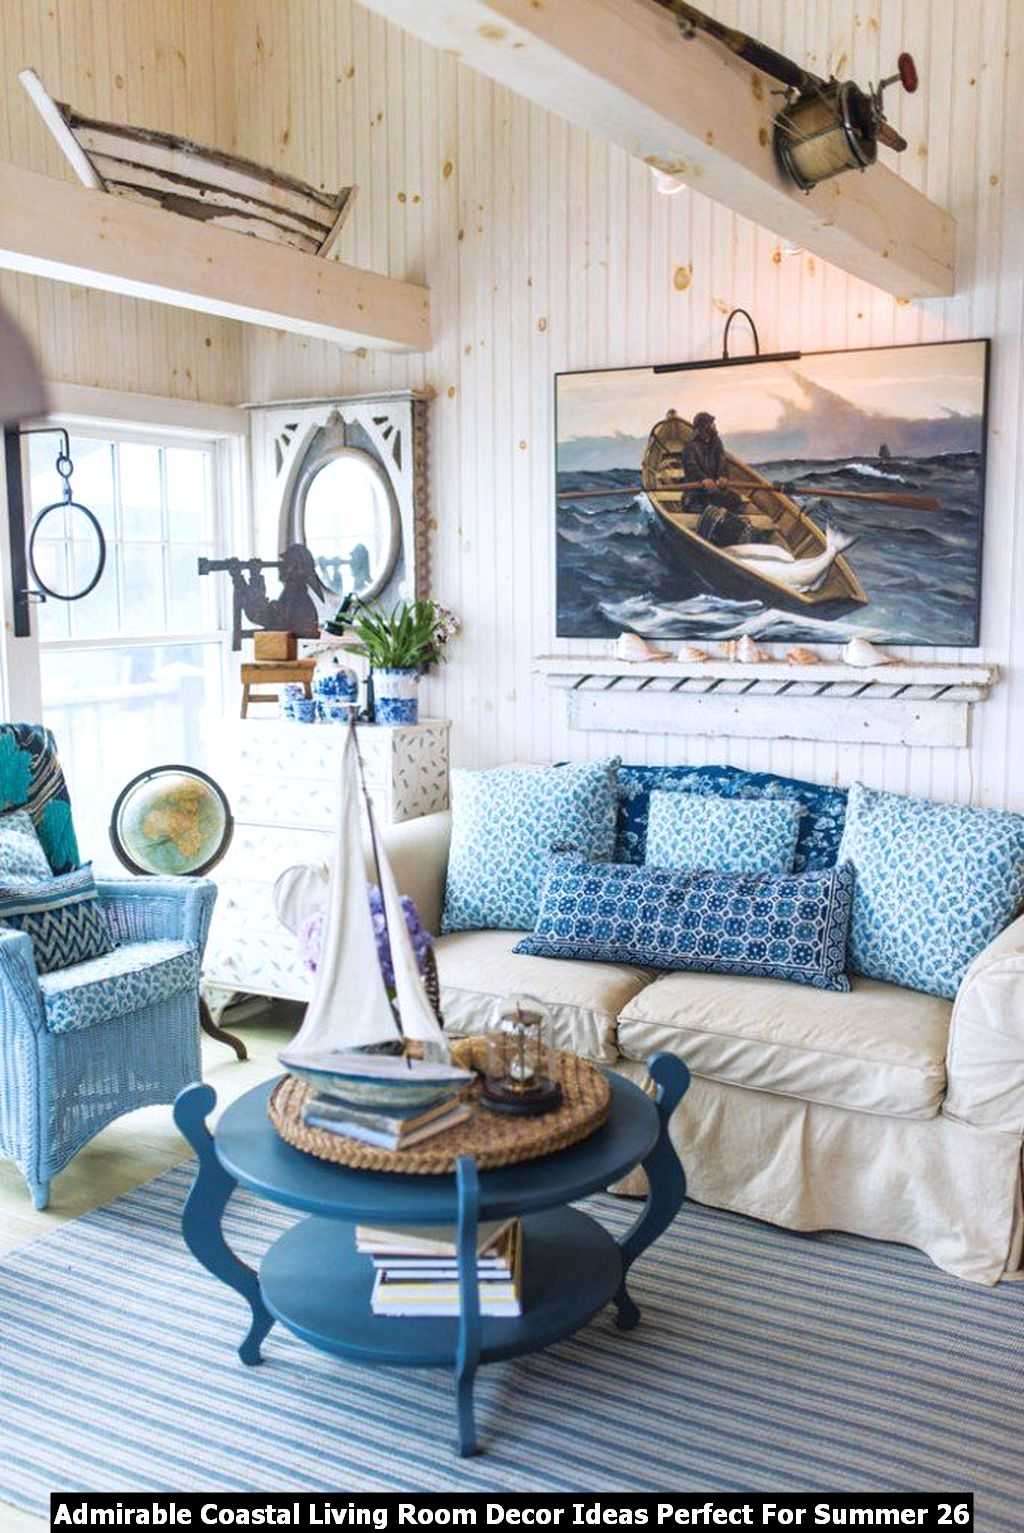 Admirable Coastal Living Room Decor Ideas Perfect For Summer 26